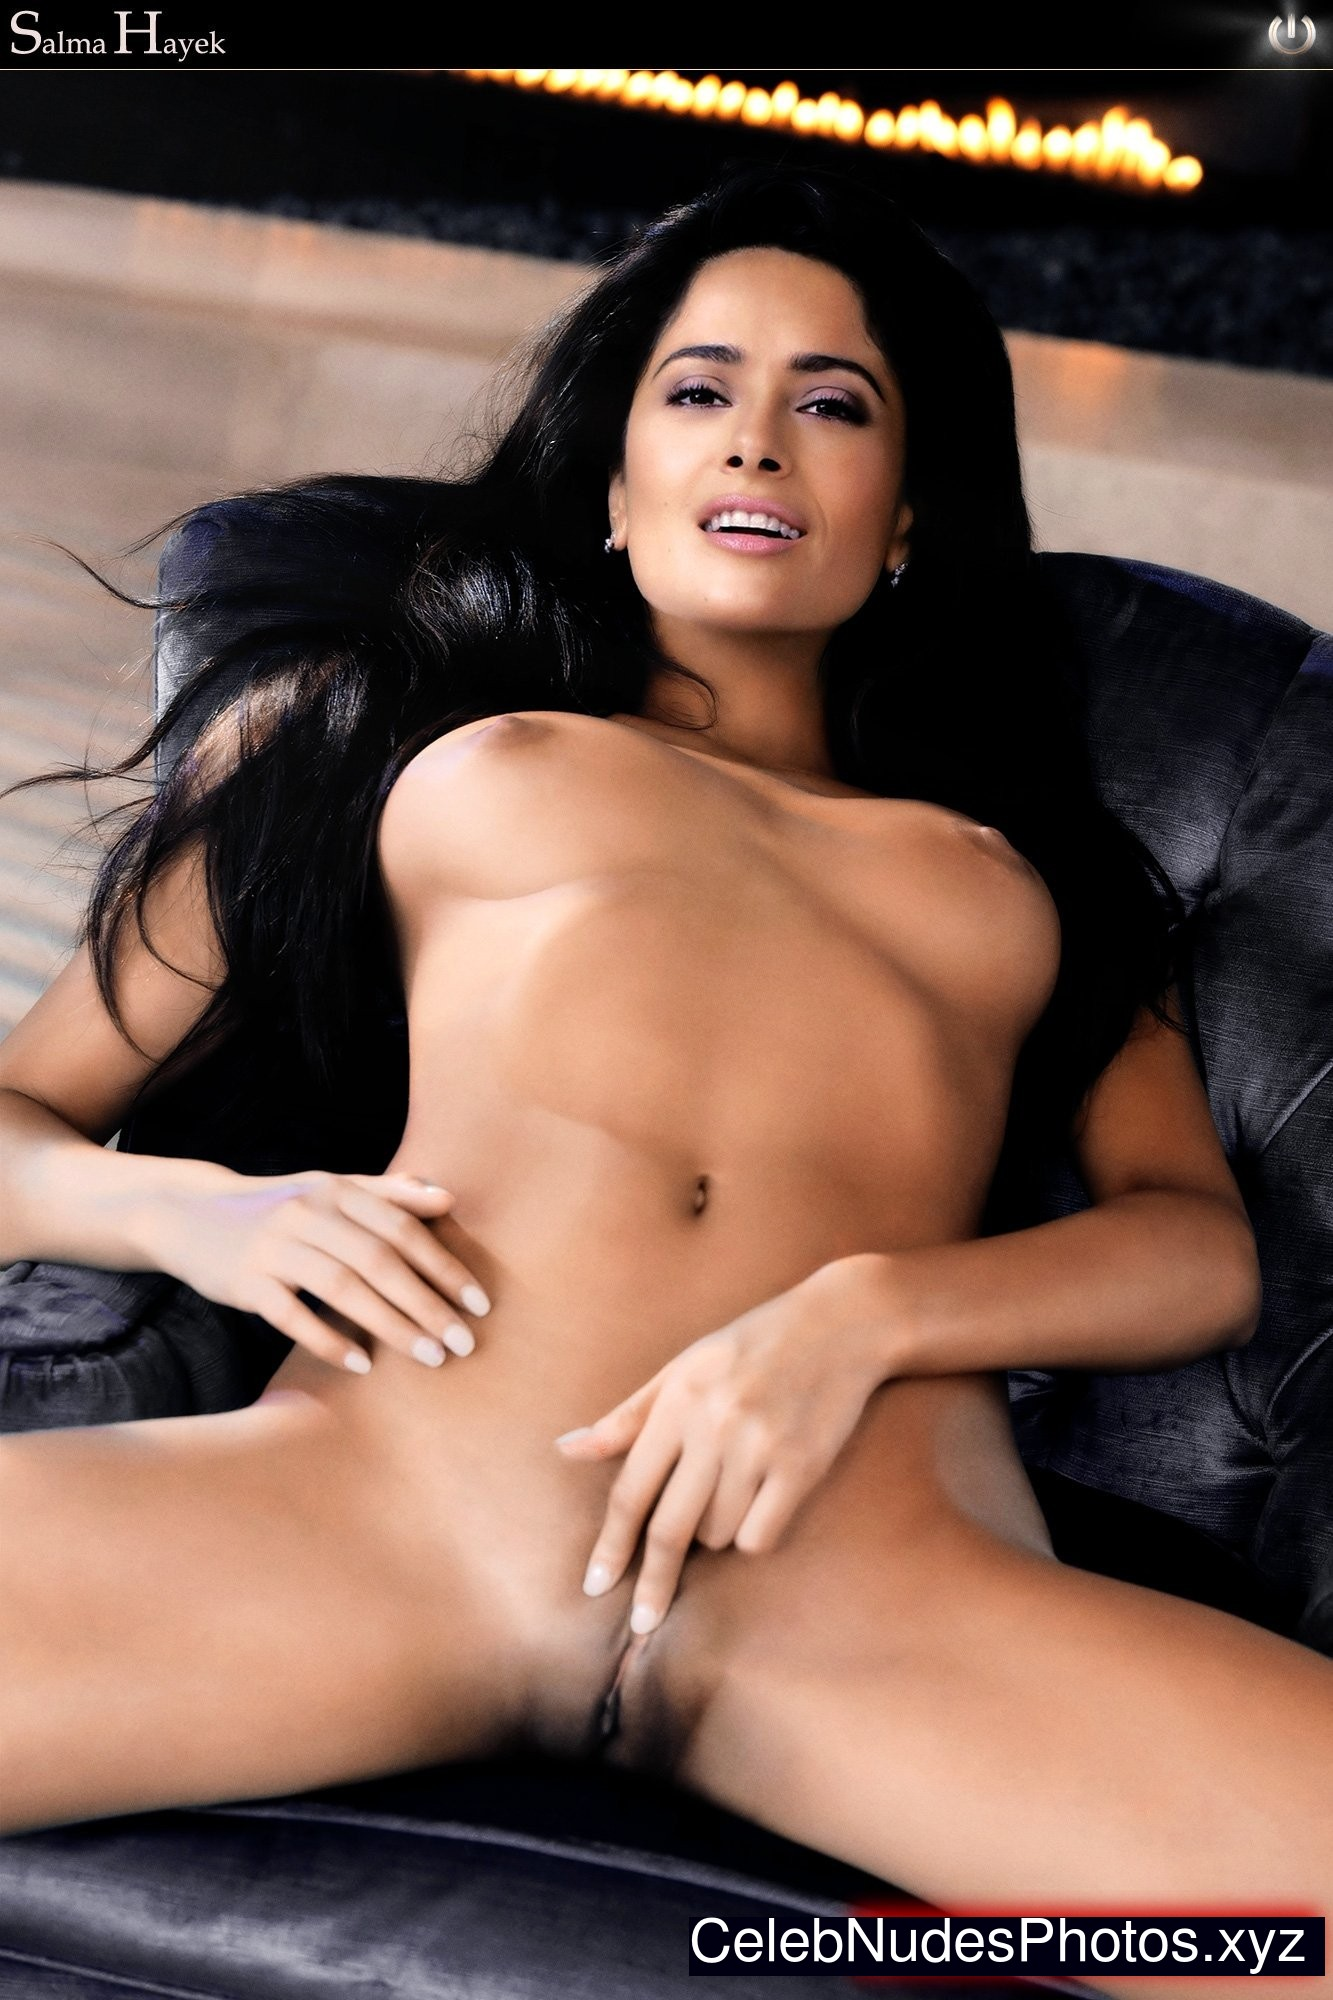 free fake nude photos of salma hayek